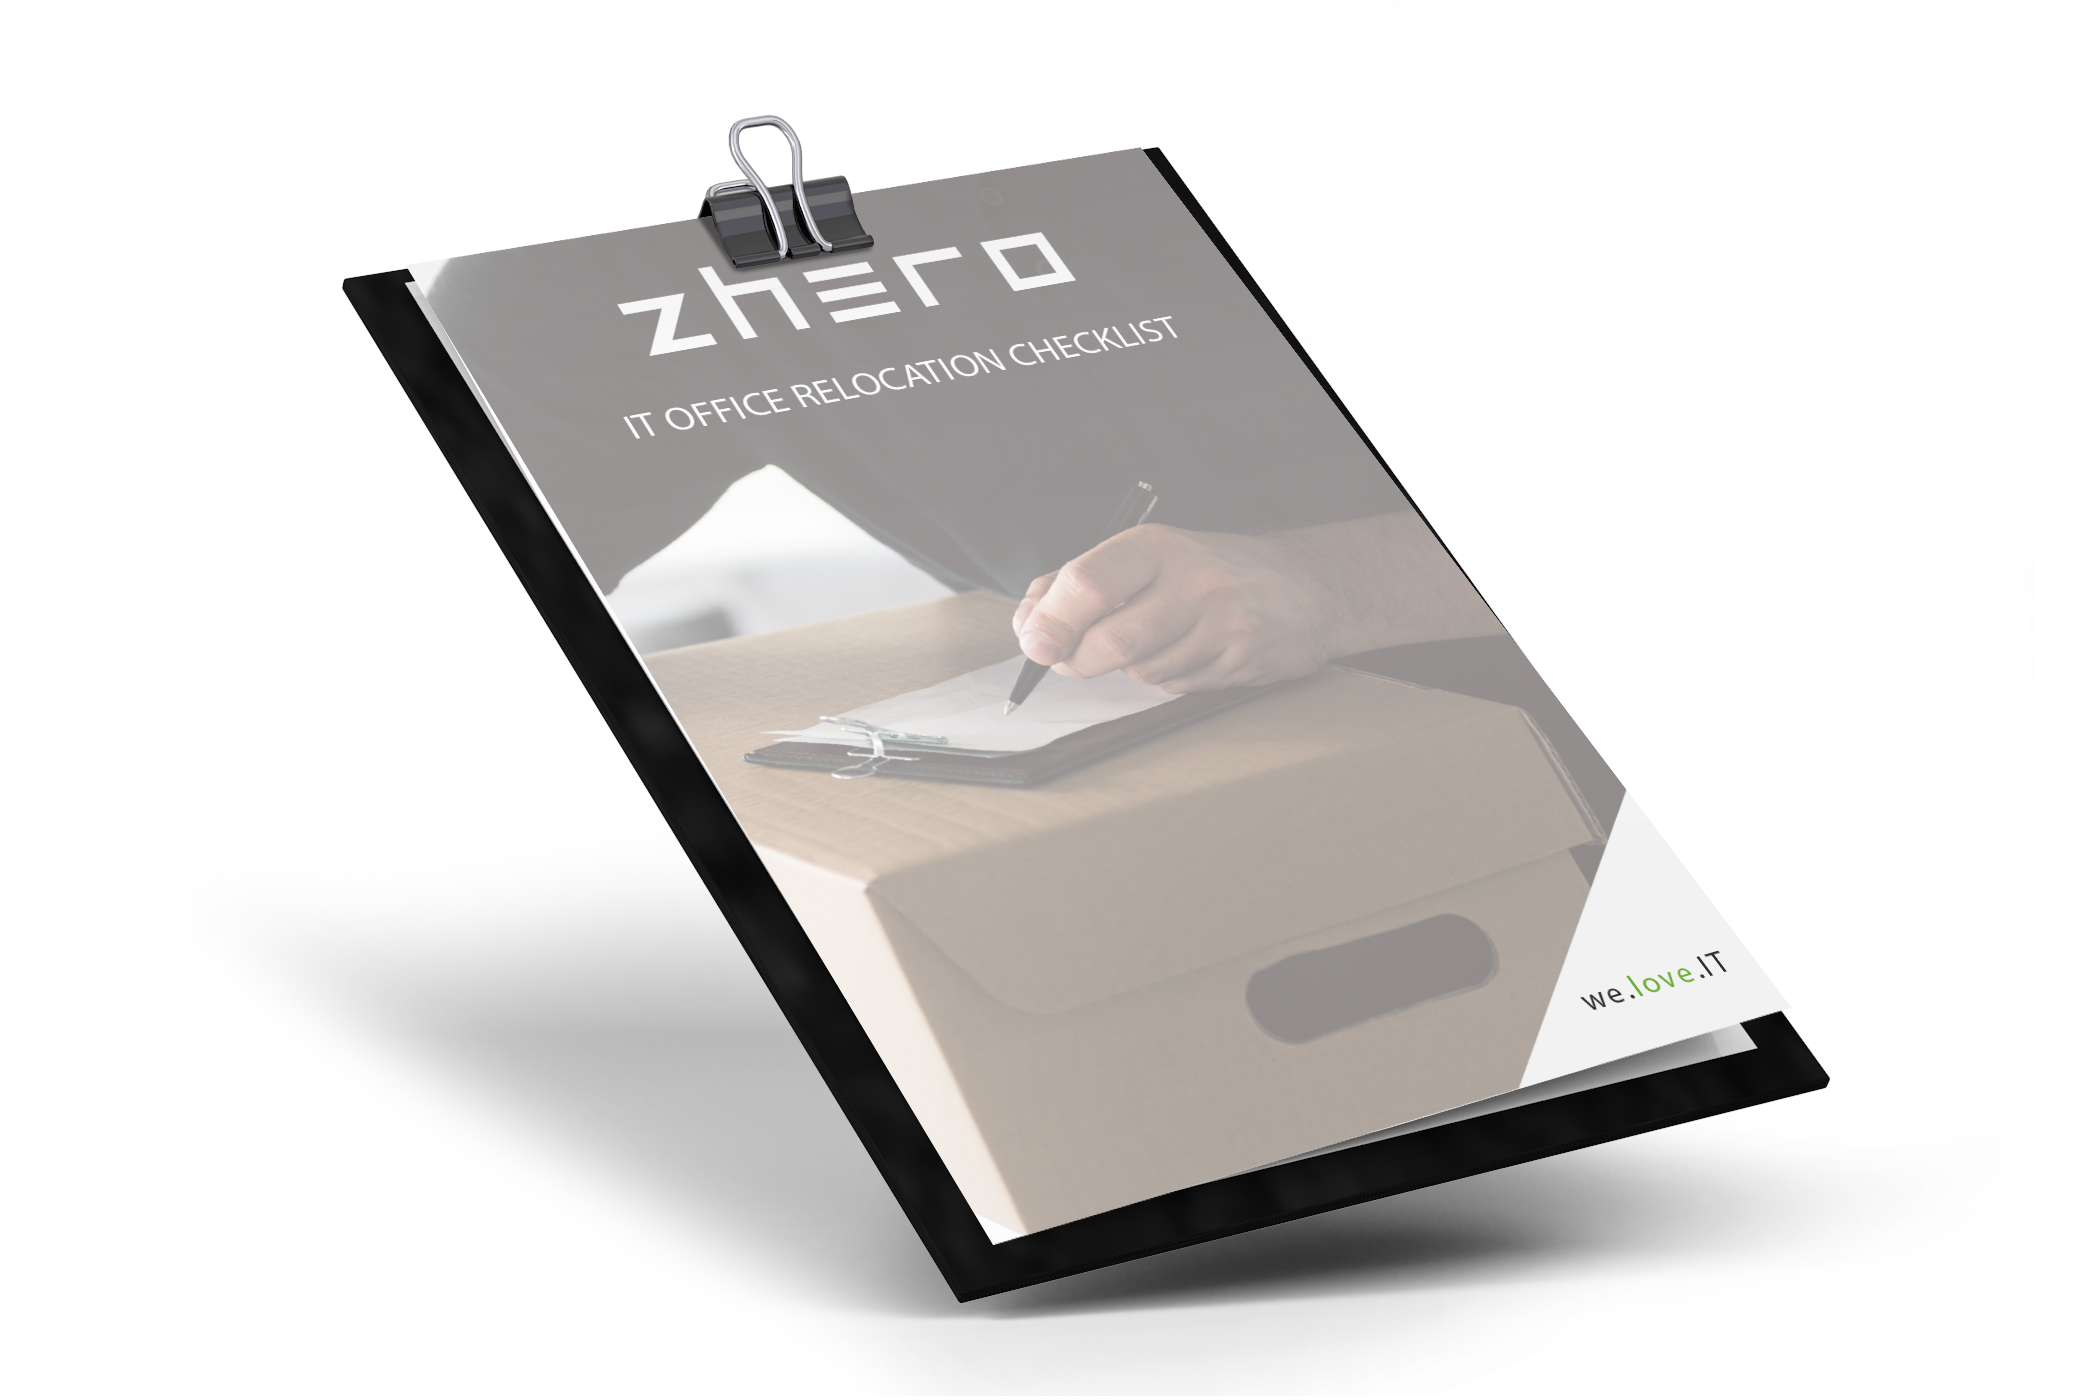 "<a href=""https://www.zhero.co.uk/office-relocation-pdf/"">IT Relocation Checklist</a>"